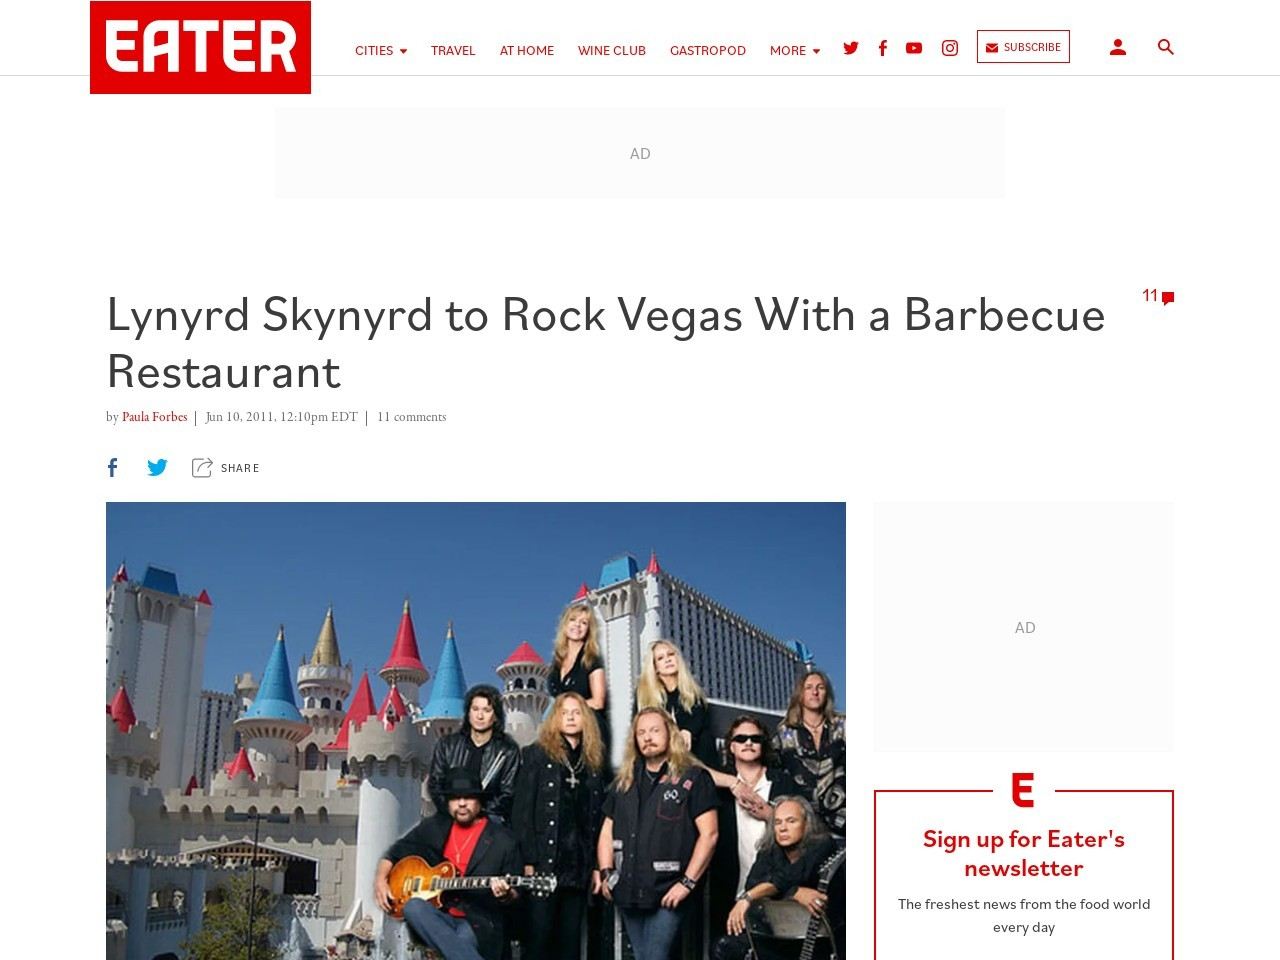 Lynyrd Skynyrd to Rock Vegas With a Barbecue Restaurant …